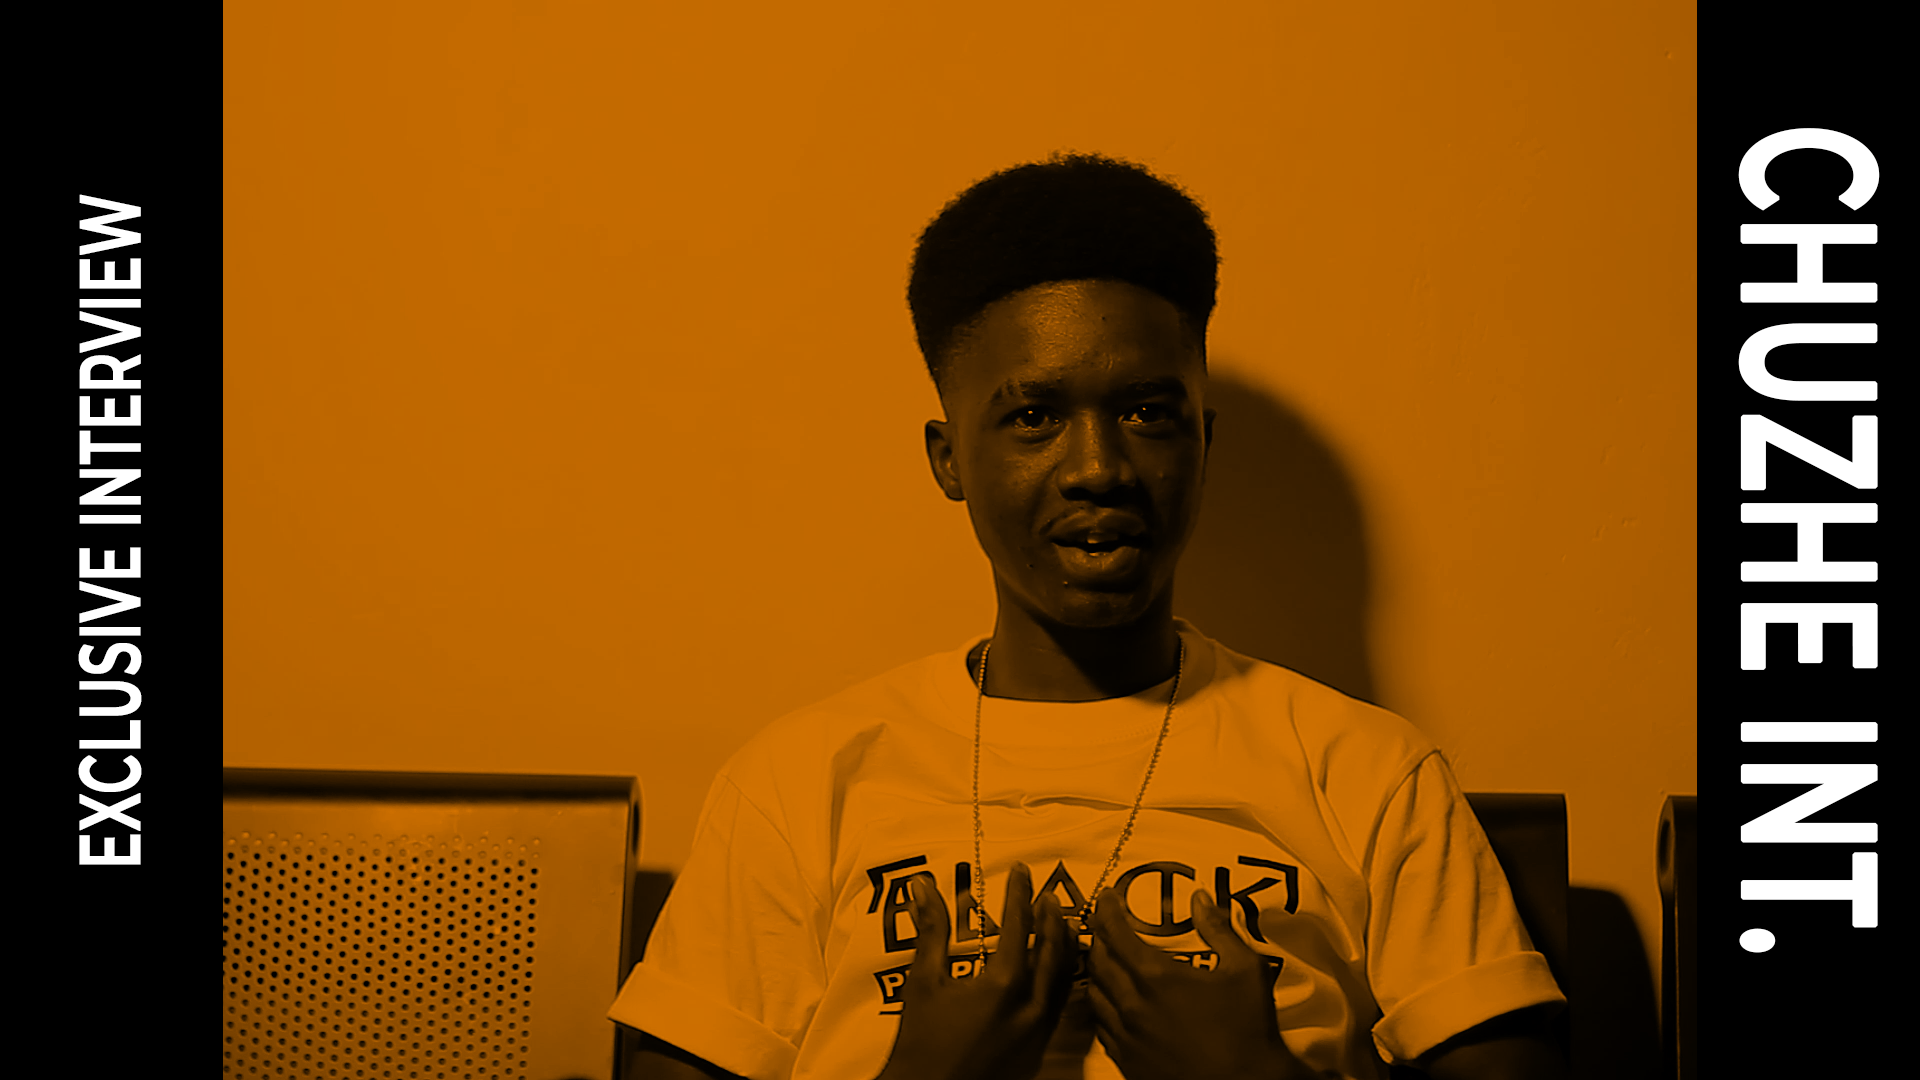 Chuzhe Int. Talks Music Inspiration and His Journey So Far